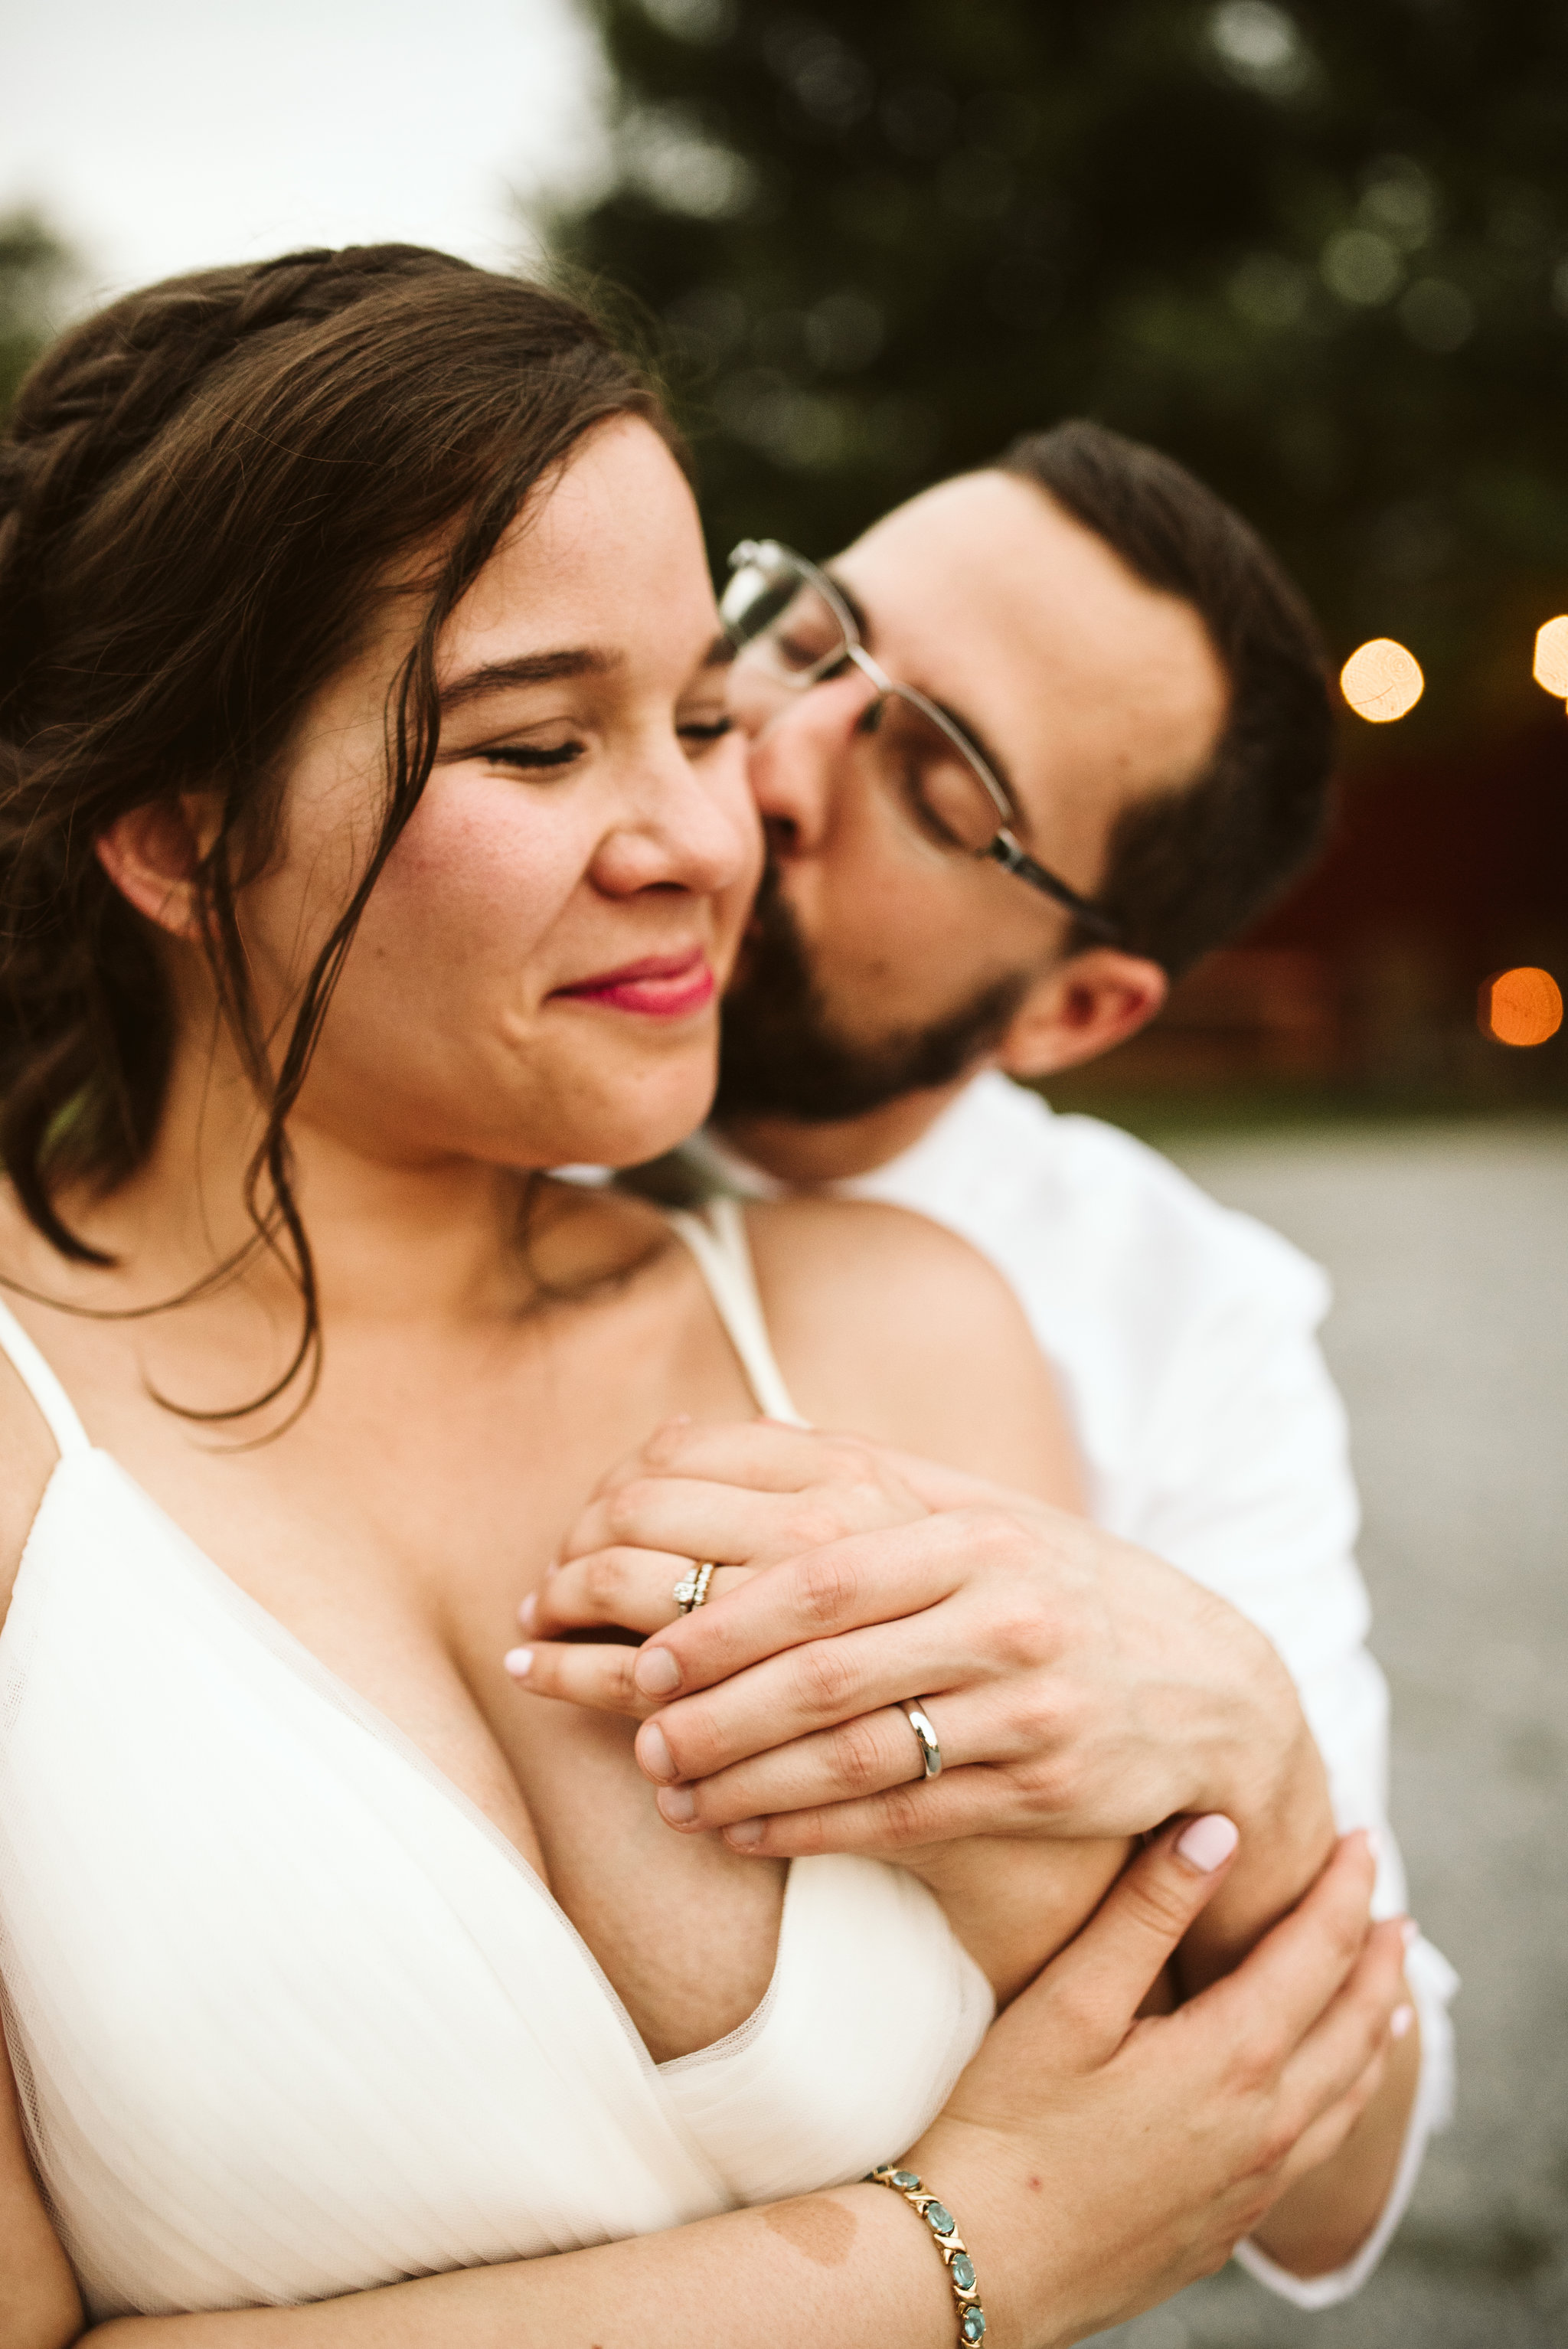 Rocklands Farm, Maryland, Intimate Wedding, Baltimore Wedding Photographer, Sungold Flower Co, Rustic, Romantic, Barn Wedding, Cute Photo of Groom Kissing Bride on the Cheek